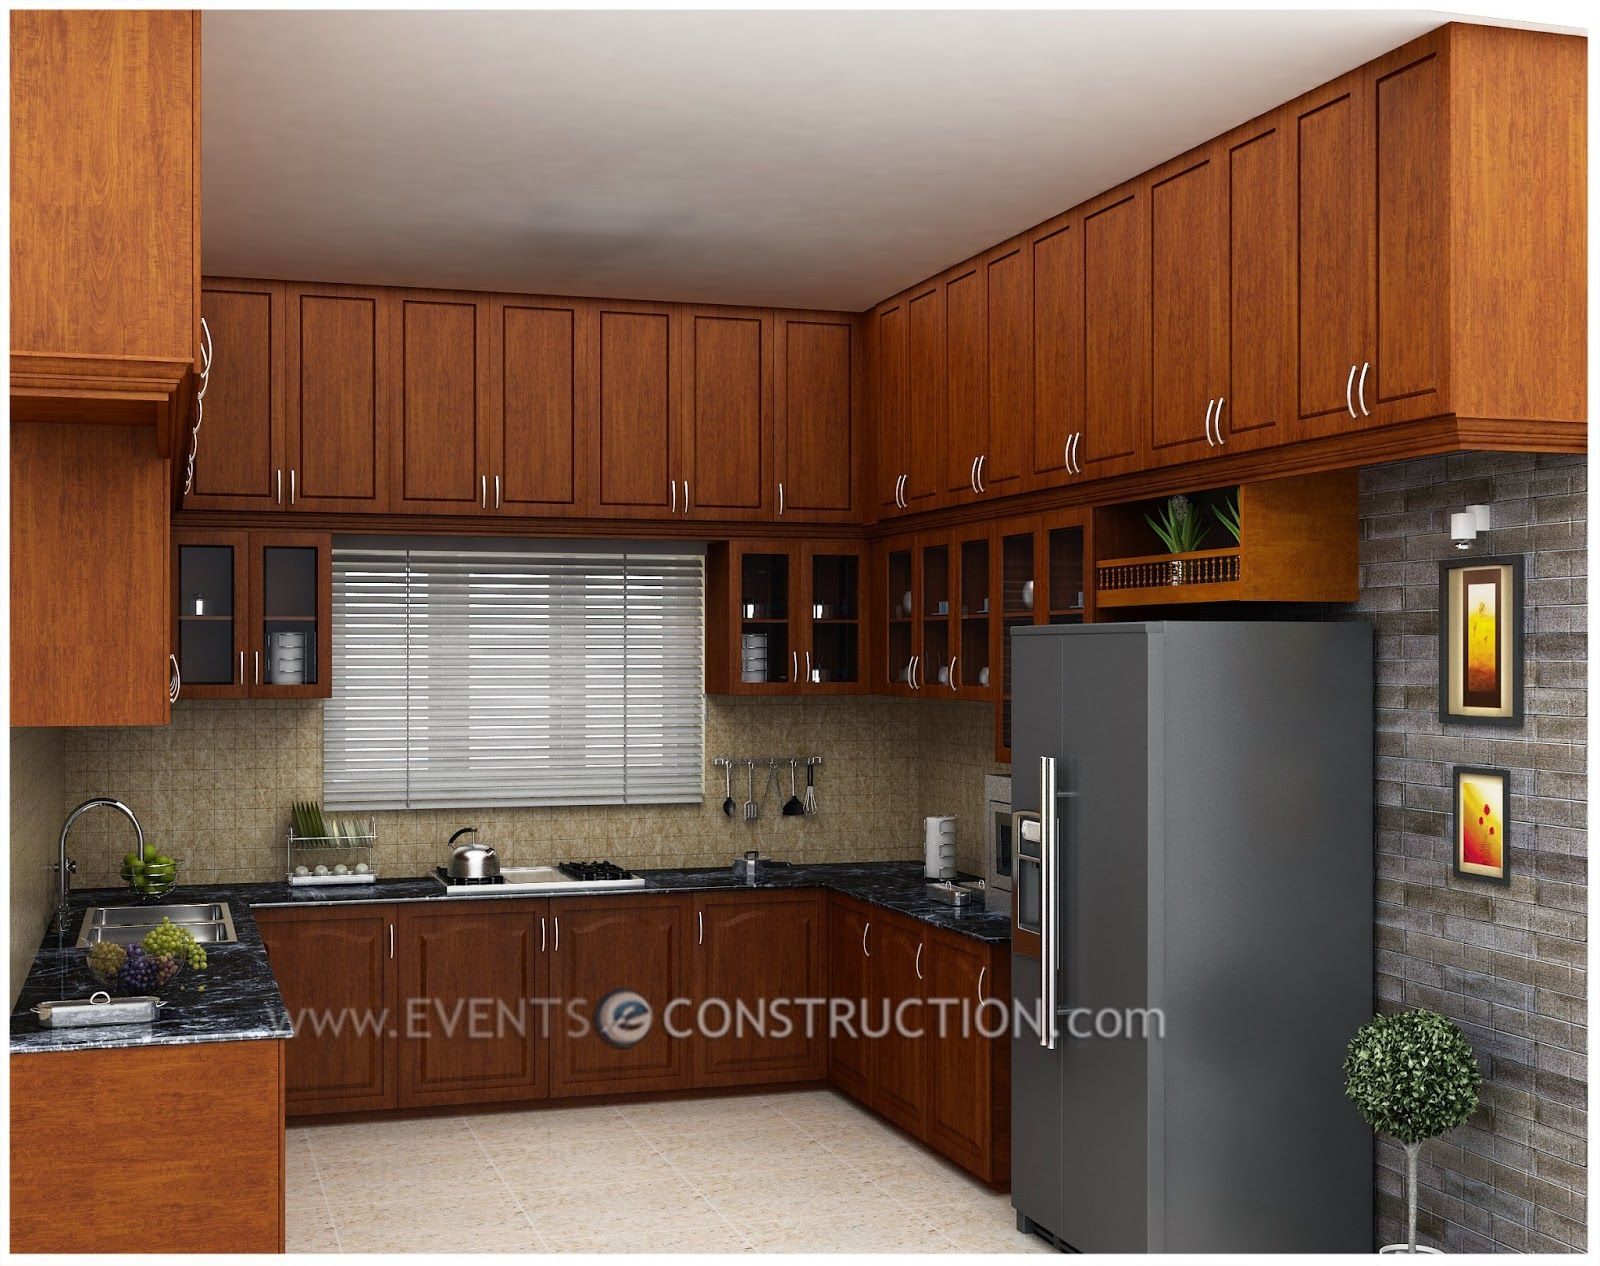 Kitchen Interior Designs Kerala Style Modular Home Design Amazing Architecture Magazine Home